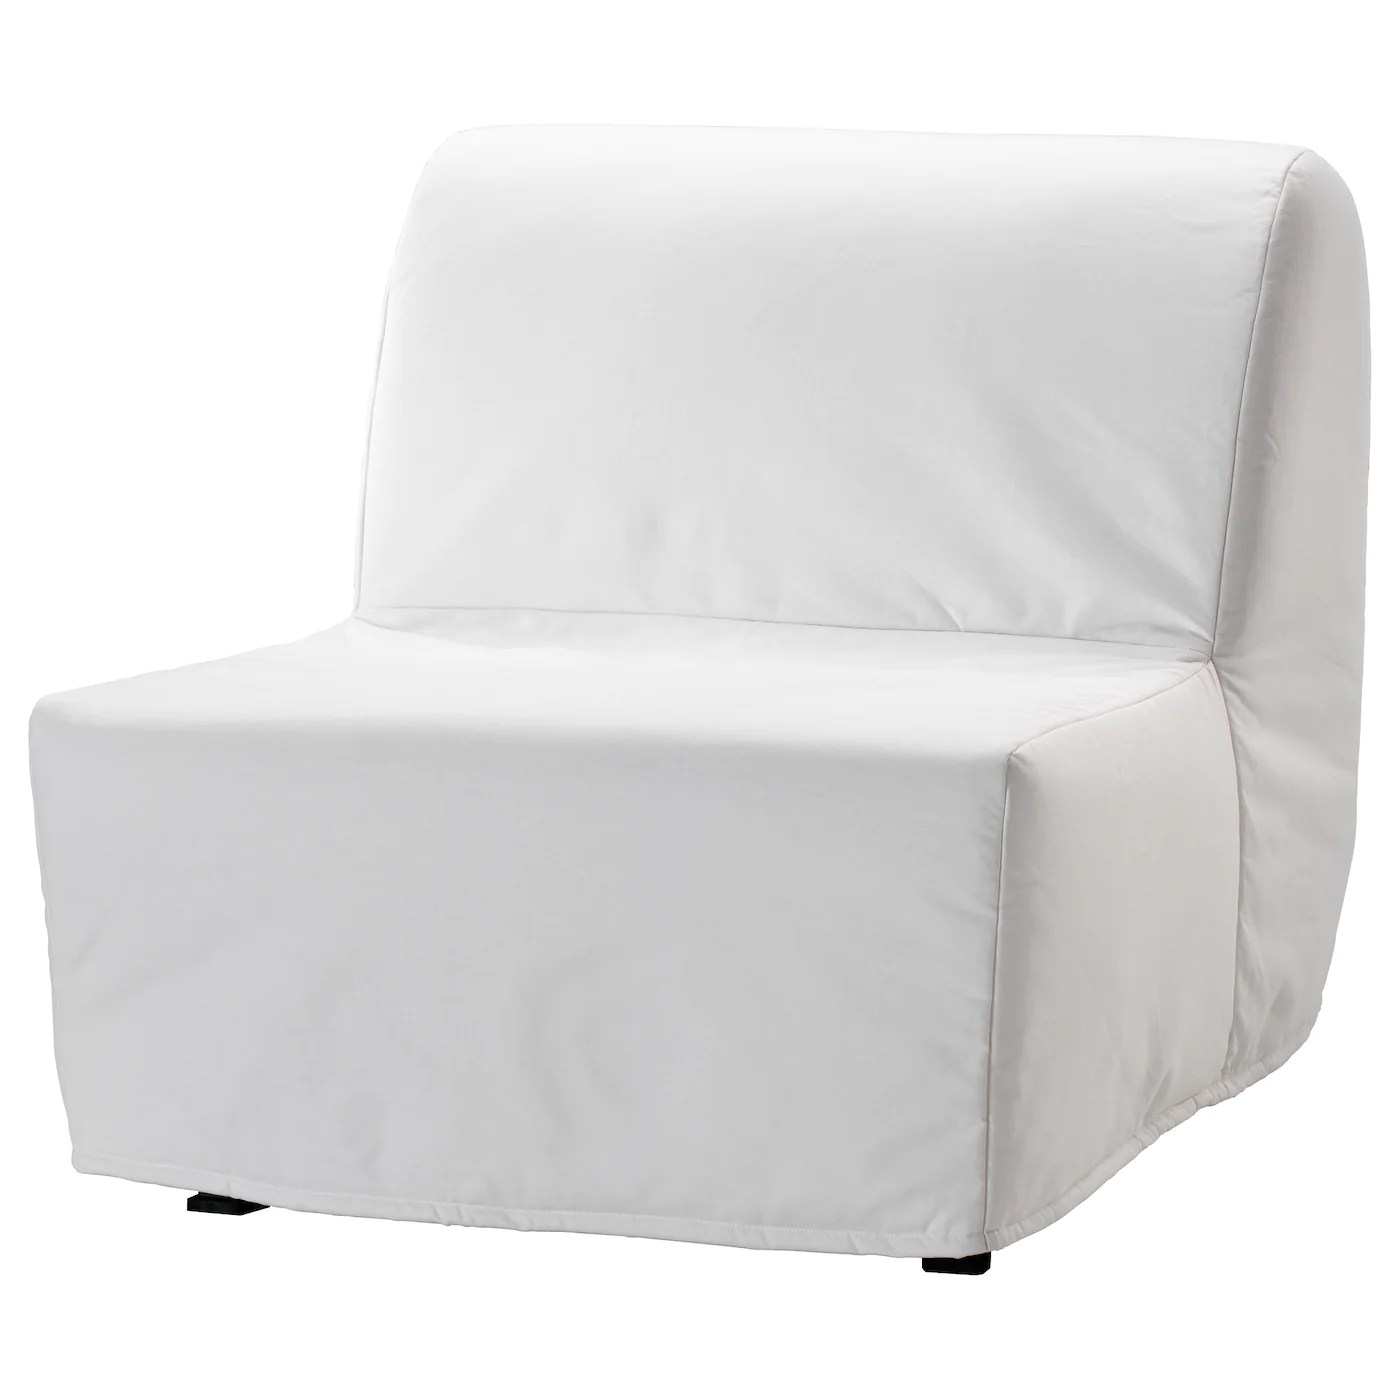 Foldable Bed Chair Lycksele LÖvÅs Chair Bed Ransta White